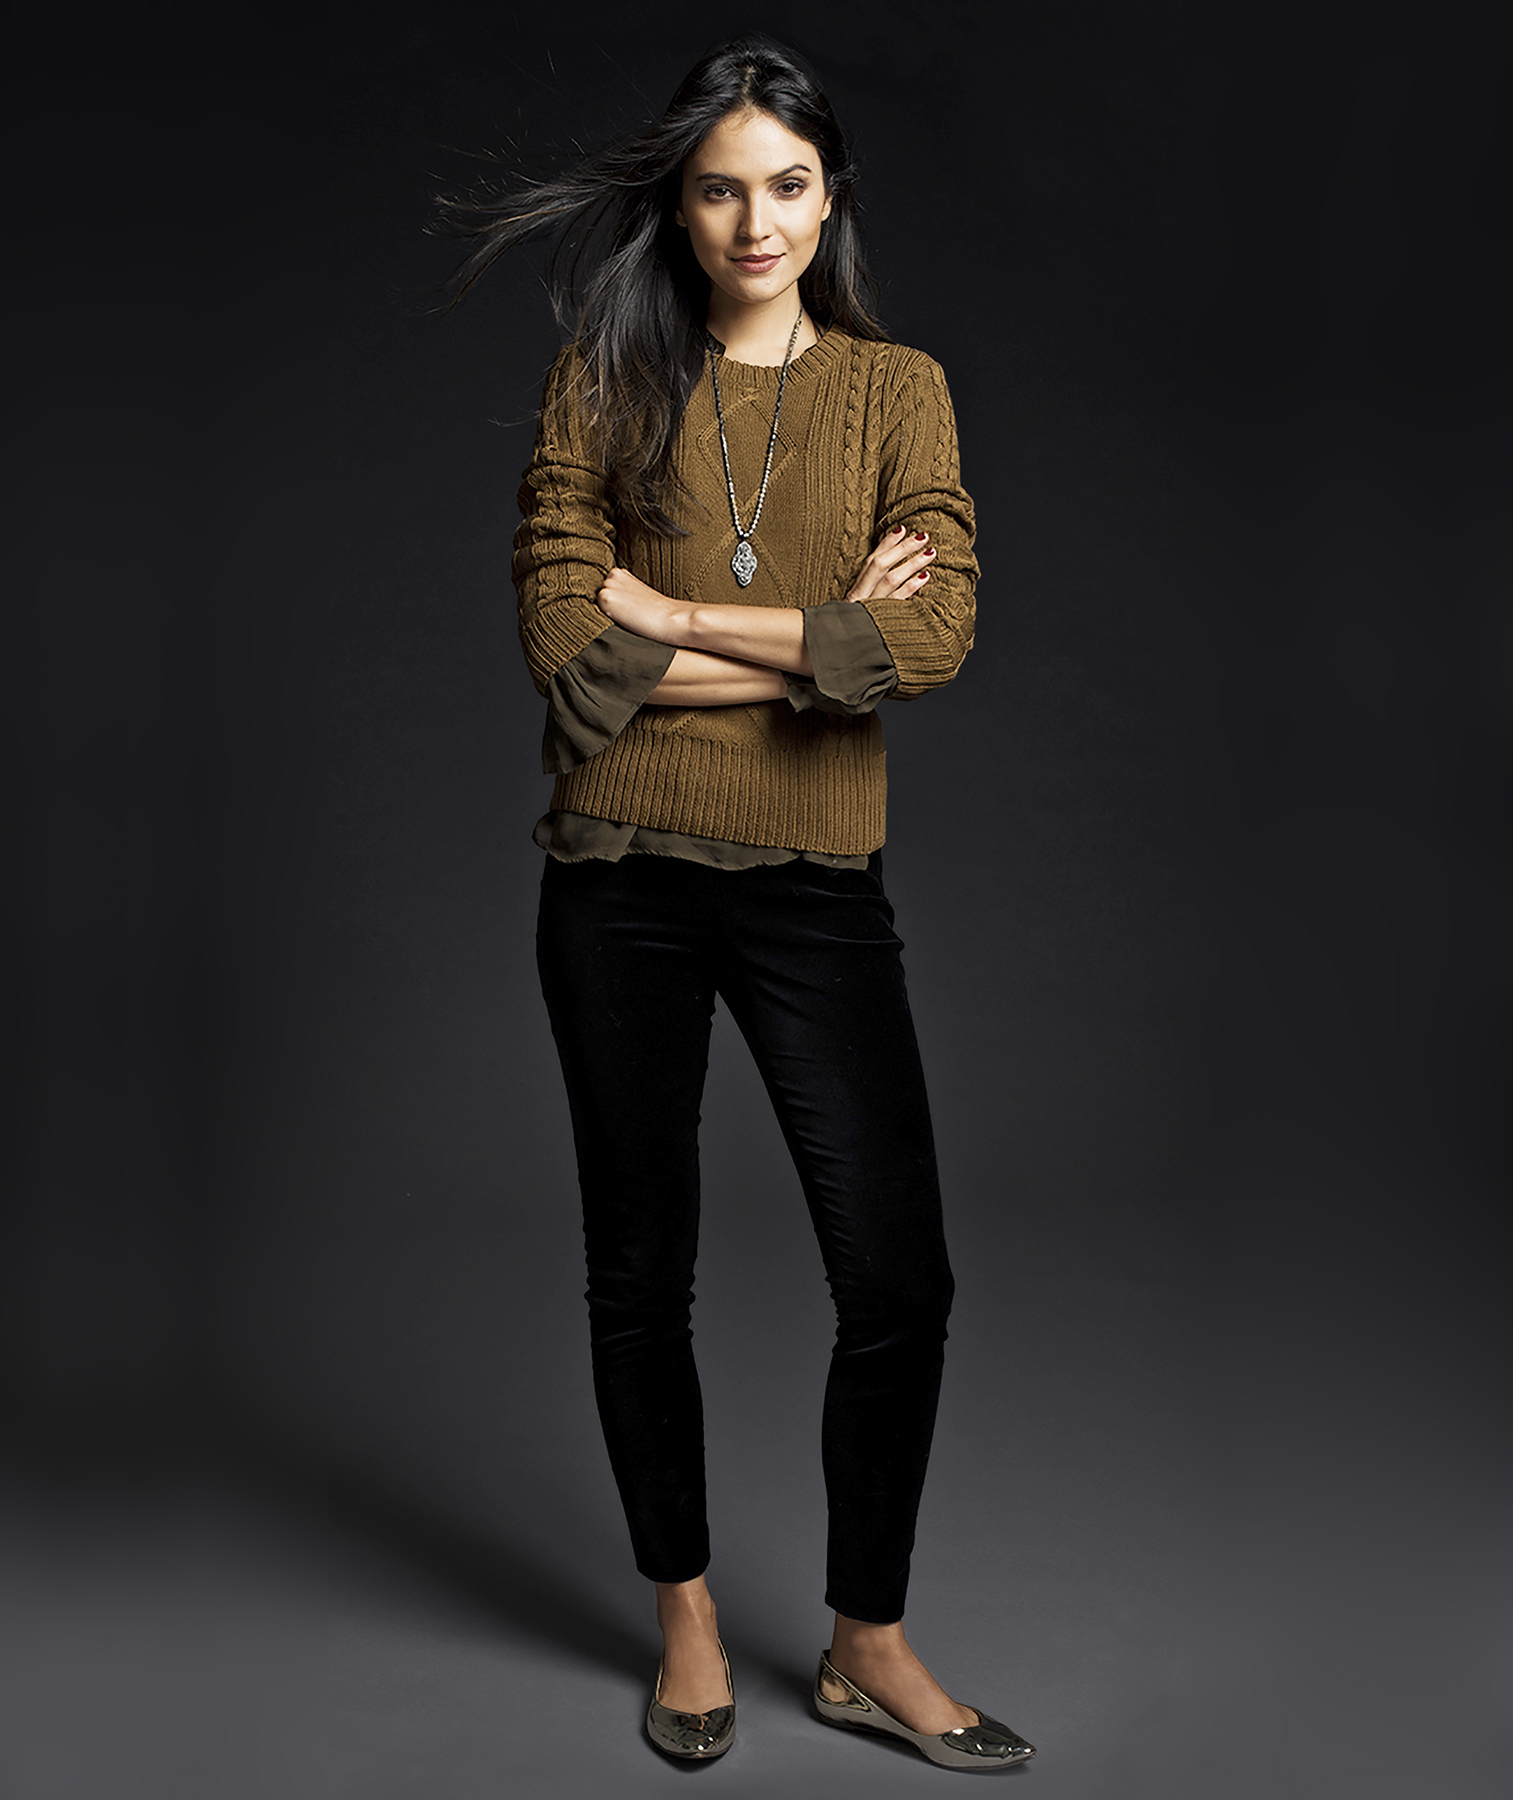 Model wearing brown sweater and black pants